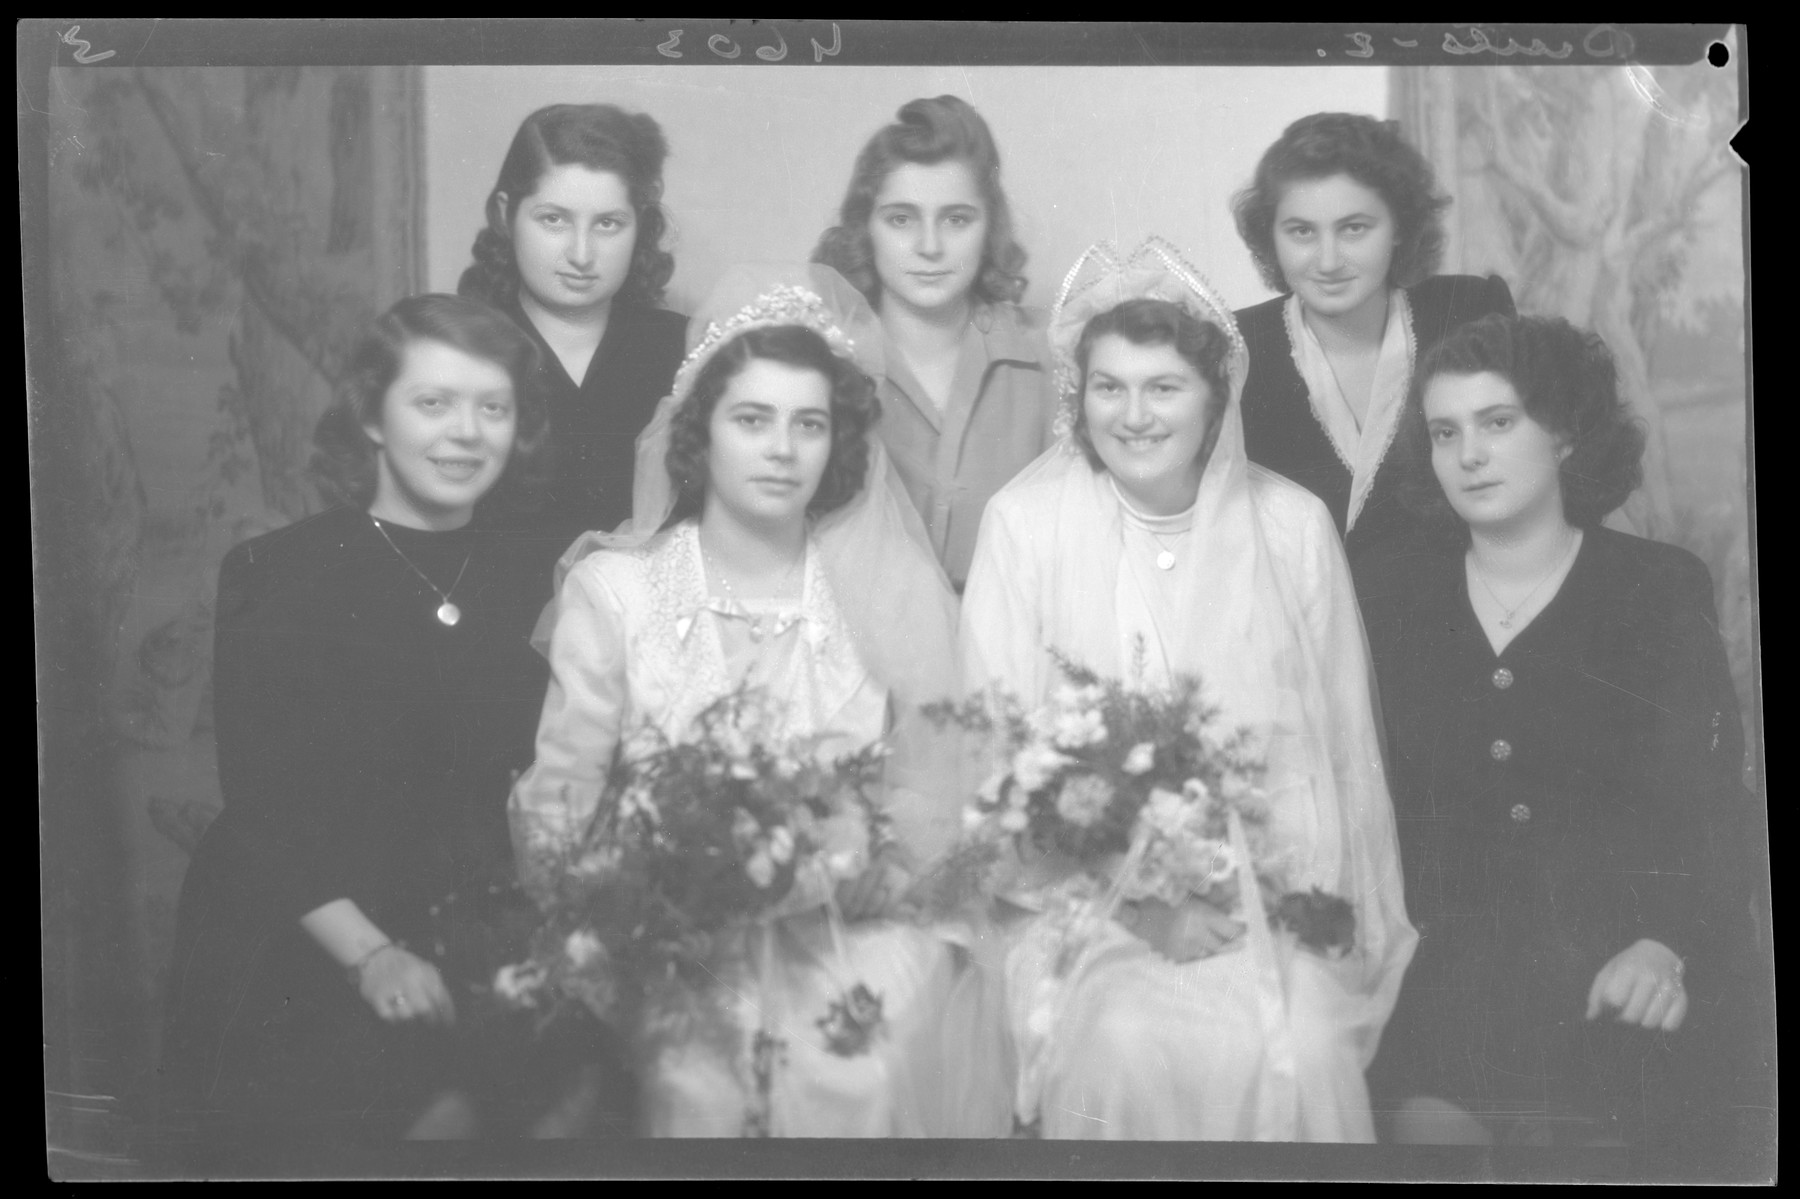 Group portraits of the bride of Herman Fischer, another bride and their female guests.